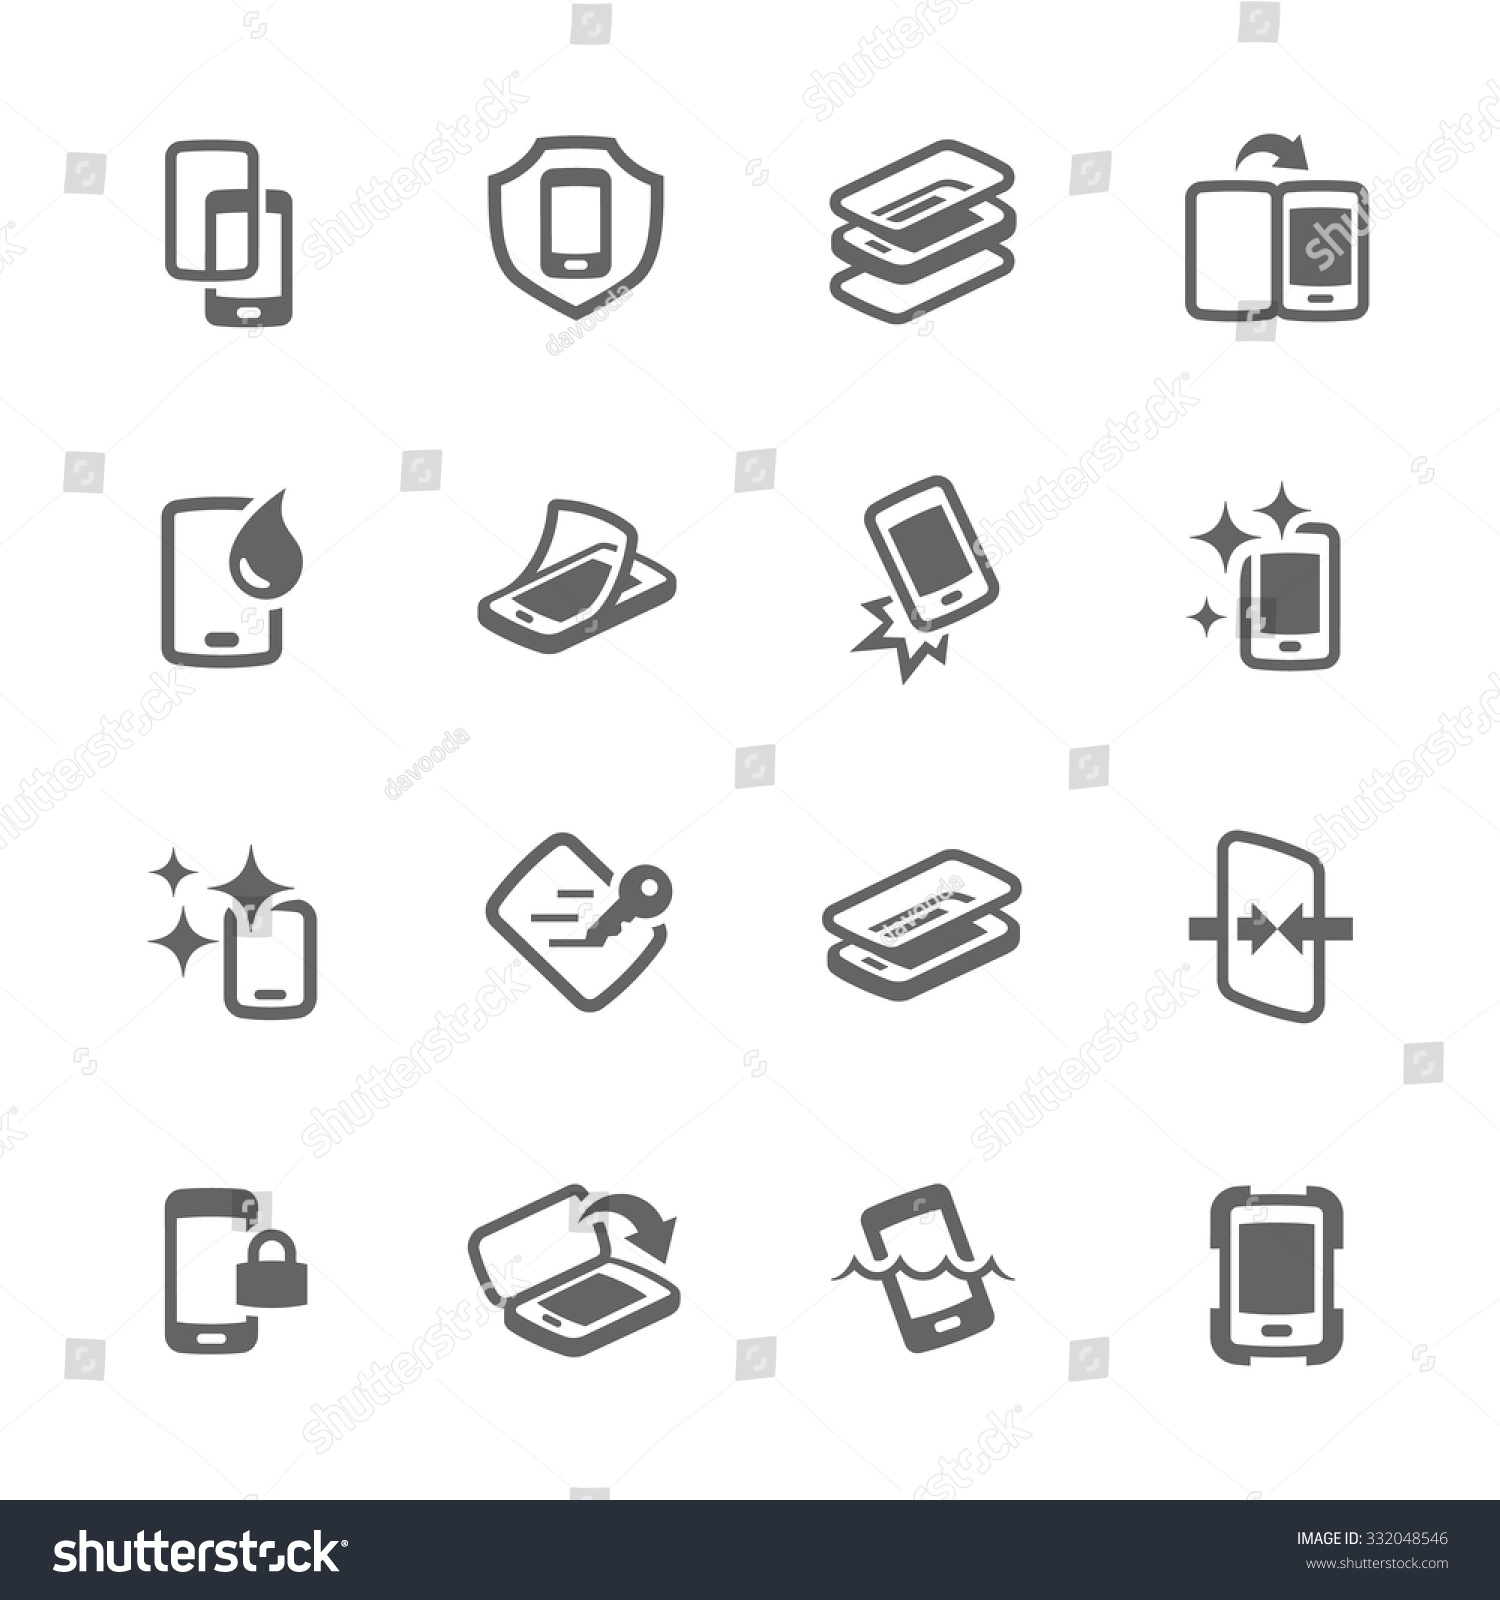 Simple Set of Smart Phone Cover Related Vector Icons for Your Design.